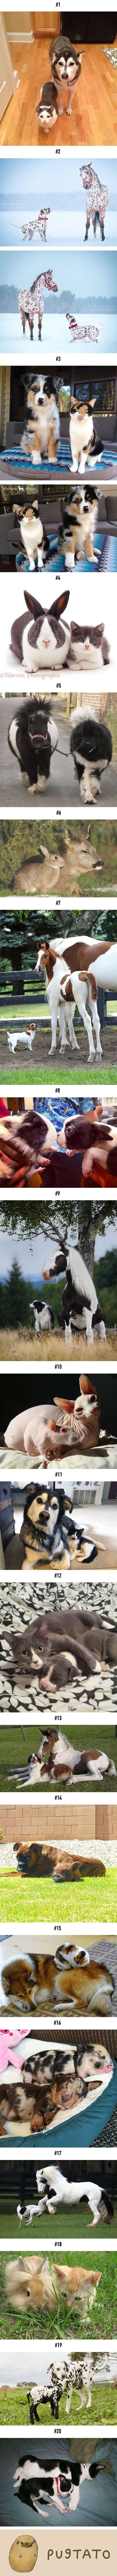 Animal friends who strongly resemble each other!